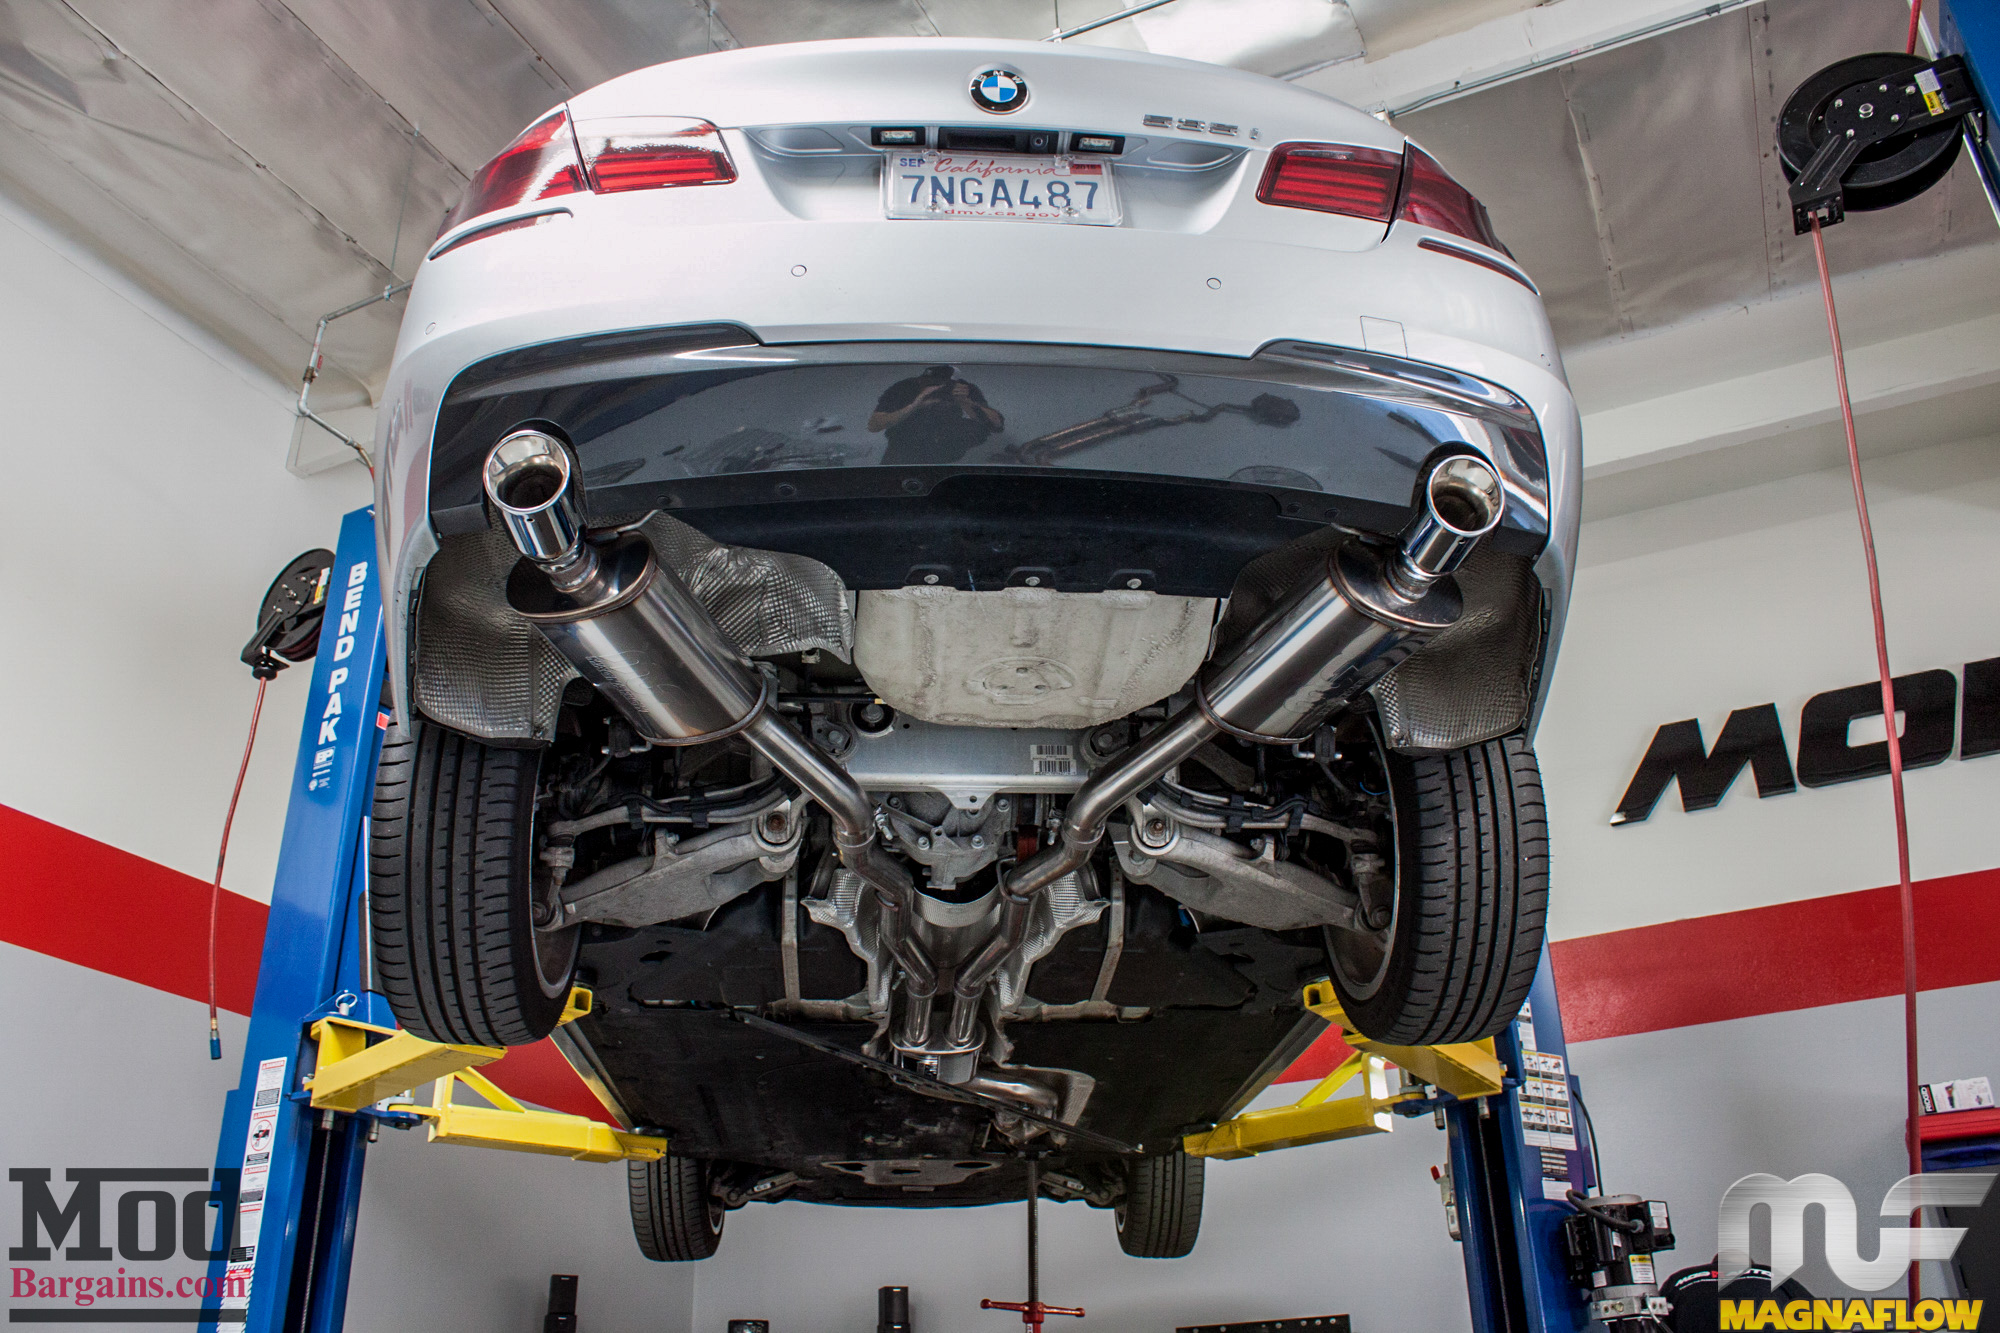 F10 Bmw 535i Magnaflow Exhaust Installed Modauto